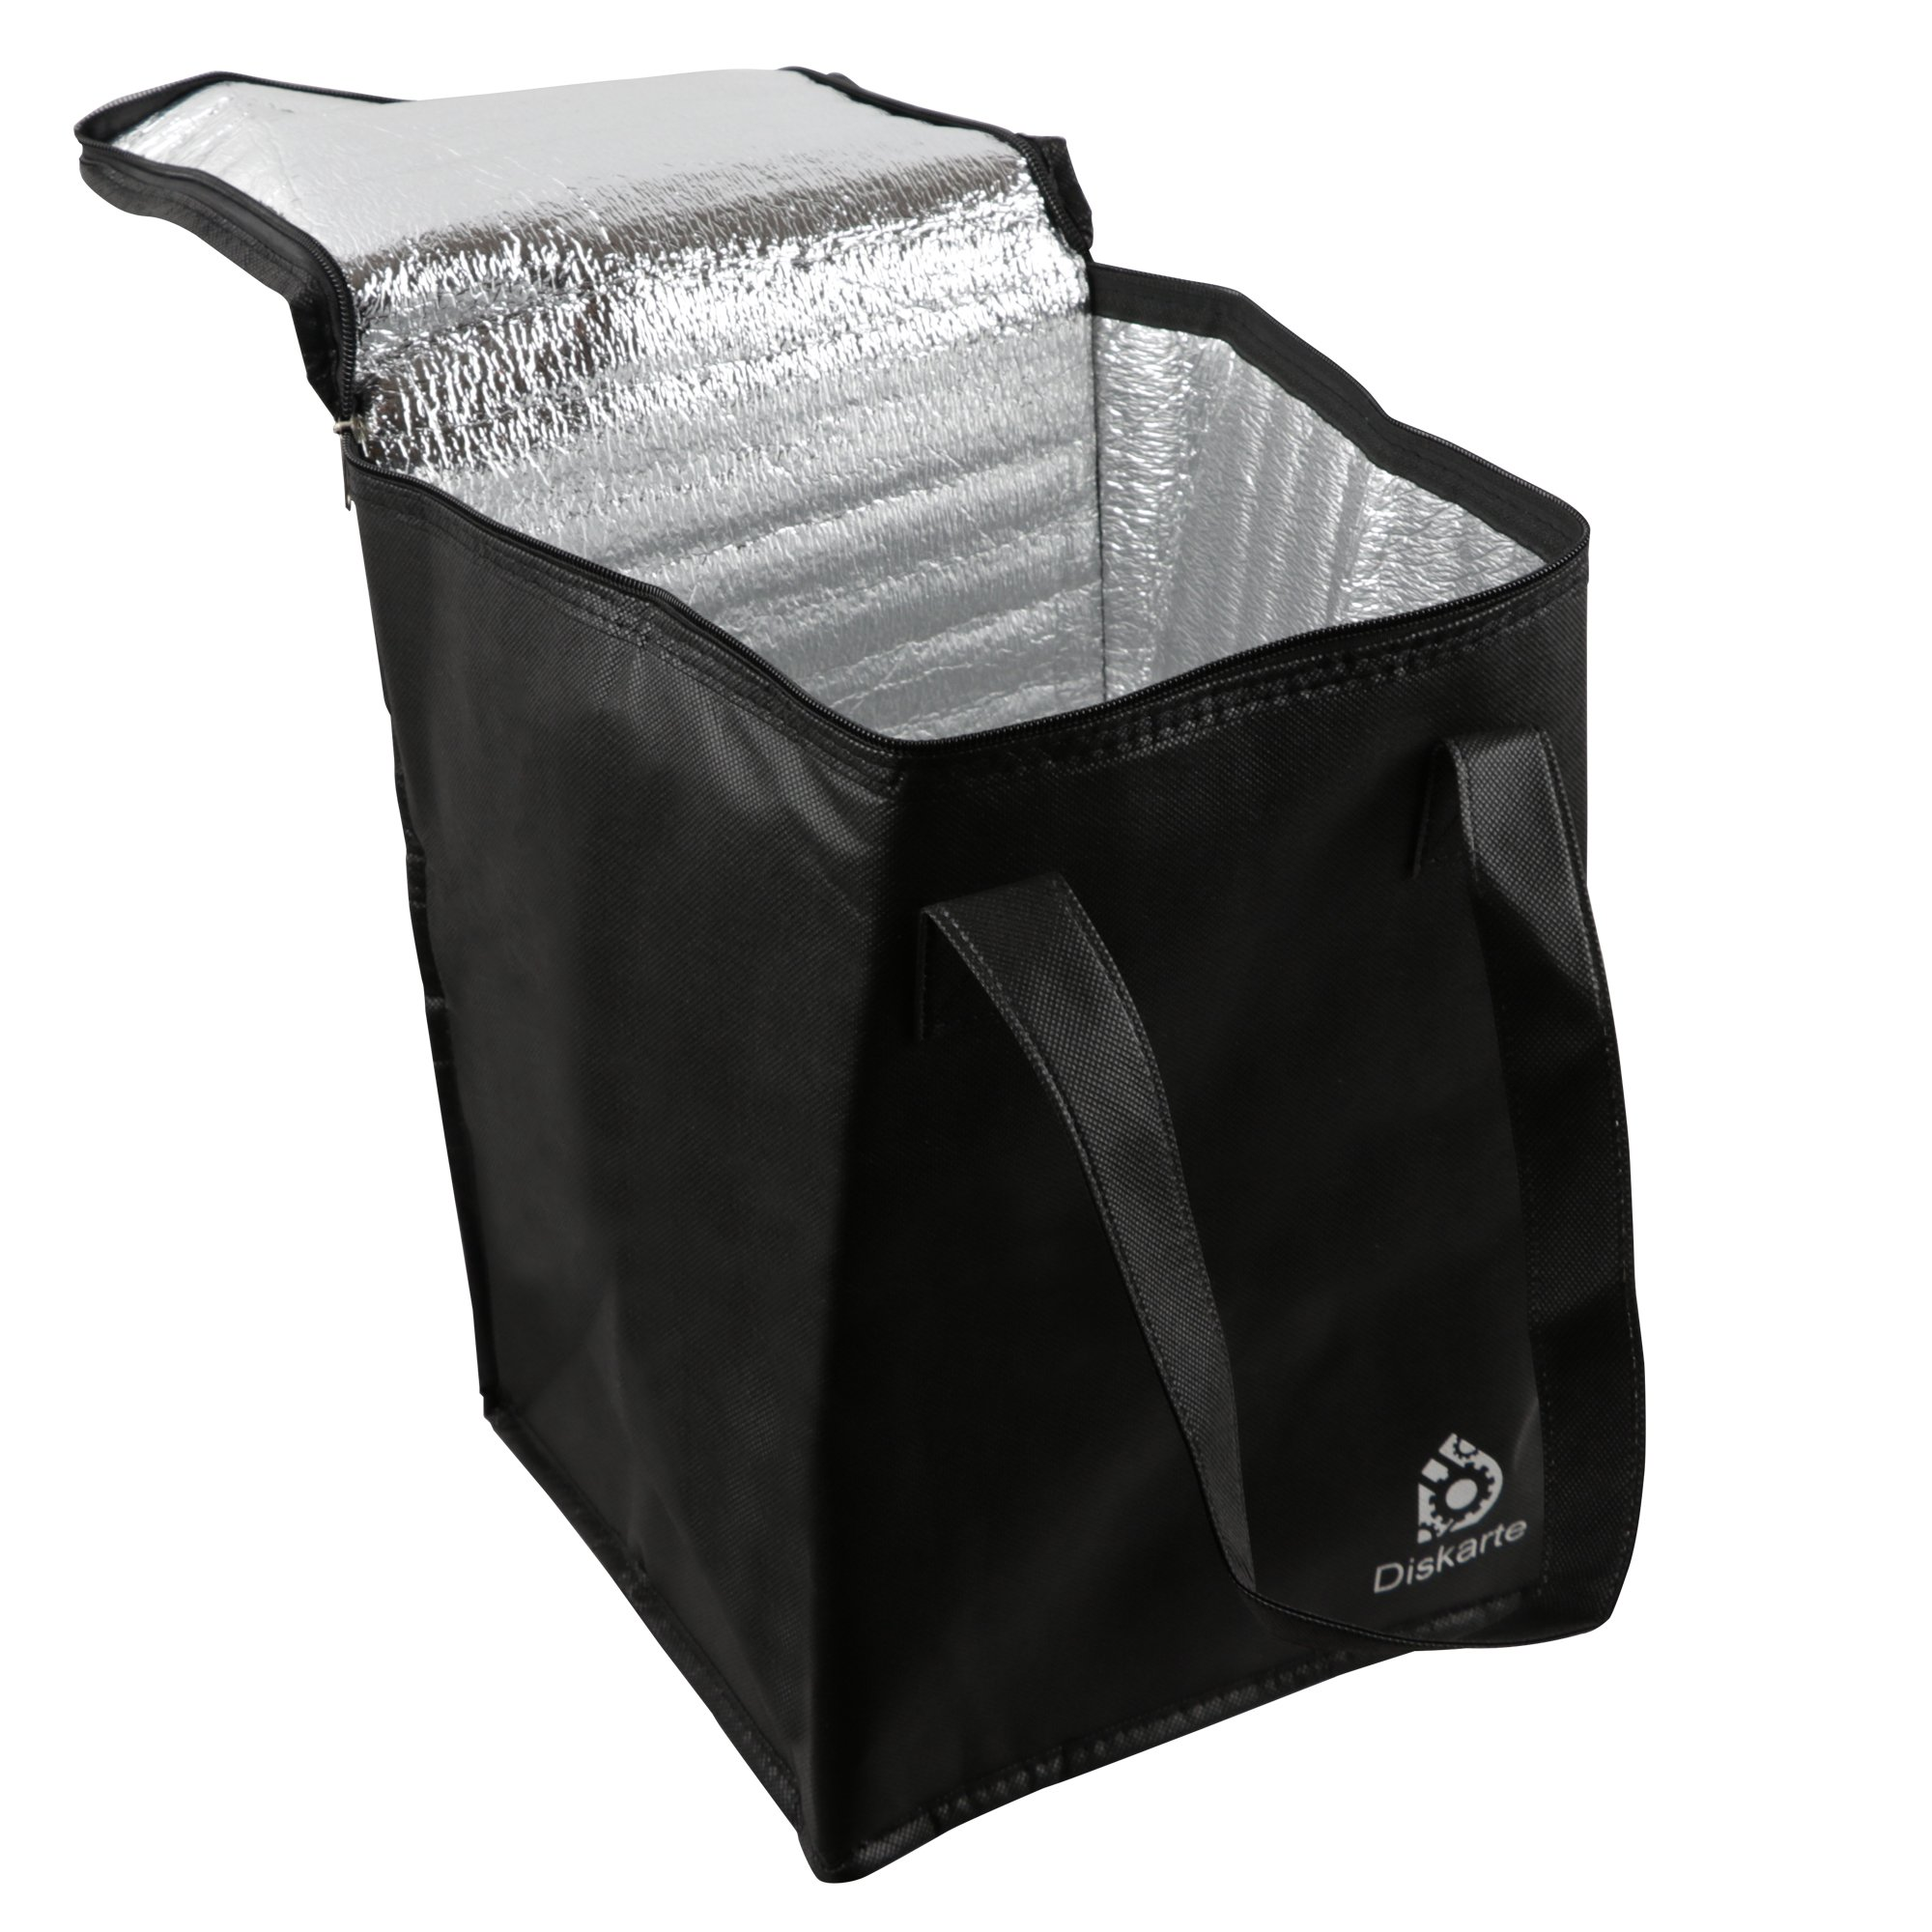 Commercial Quality Food Delivery Bag- 2 Piece Set Black Delivery Bag for Food- 13'' x 9'' x 9'' Dimensions- 80 GSM Nonwoven Polypropylene- Practical and Comfortable by Diskarte (Image #7)